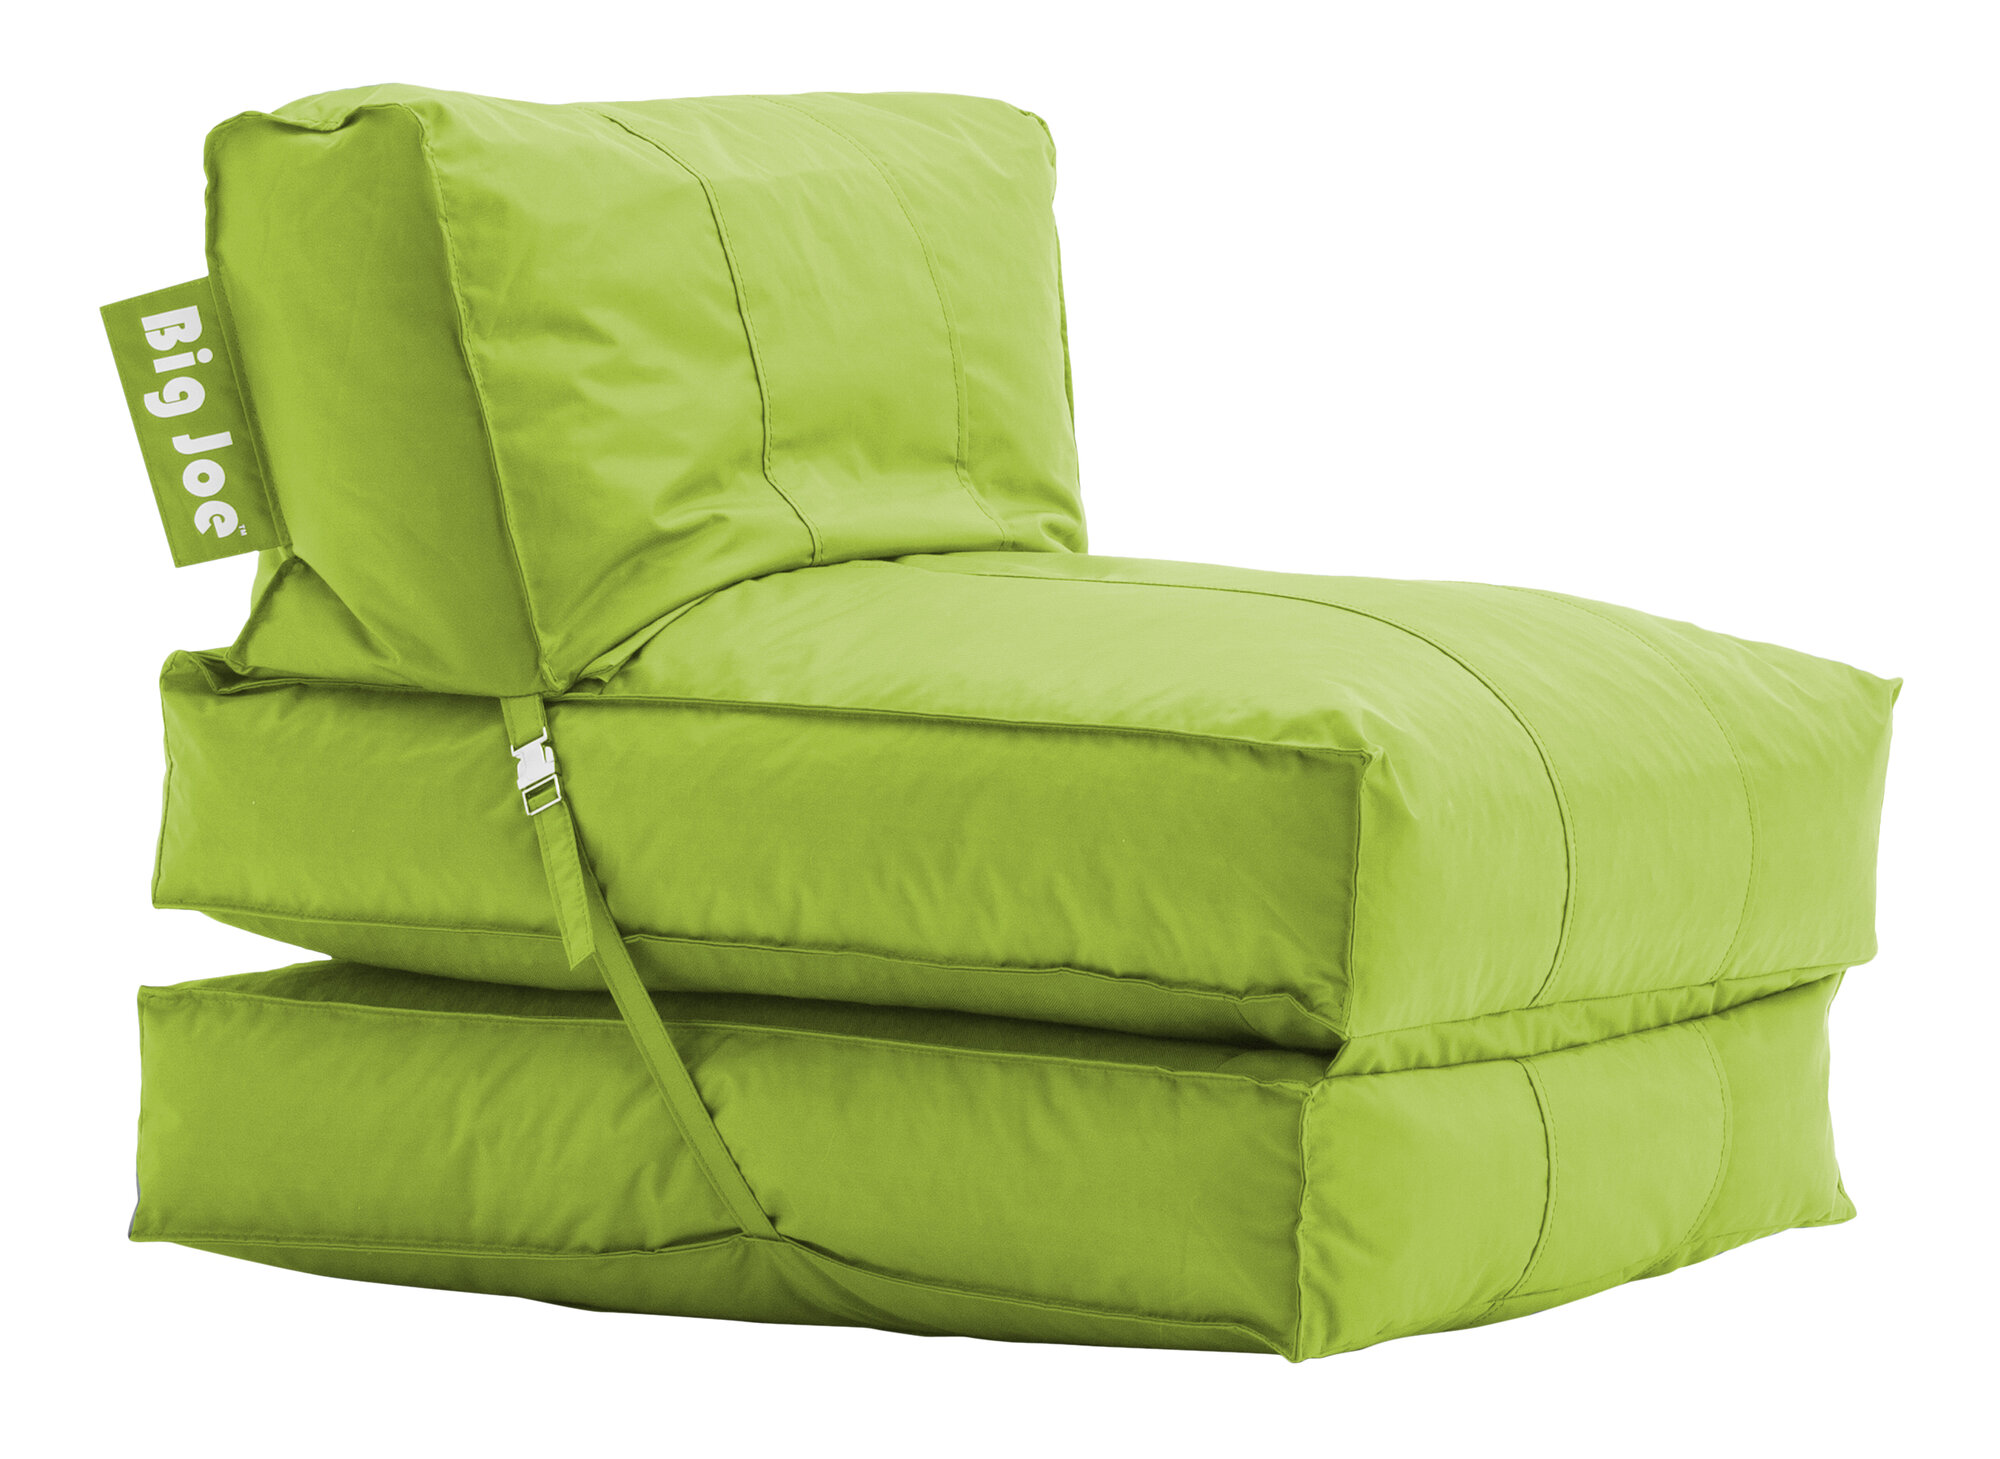 Comfort Research Big Joe Flip Bean Bag Chair